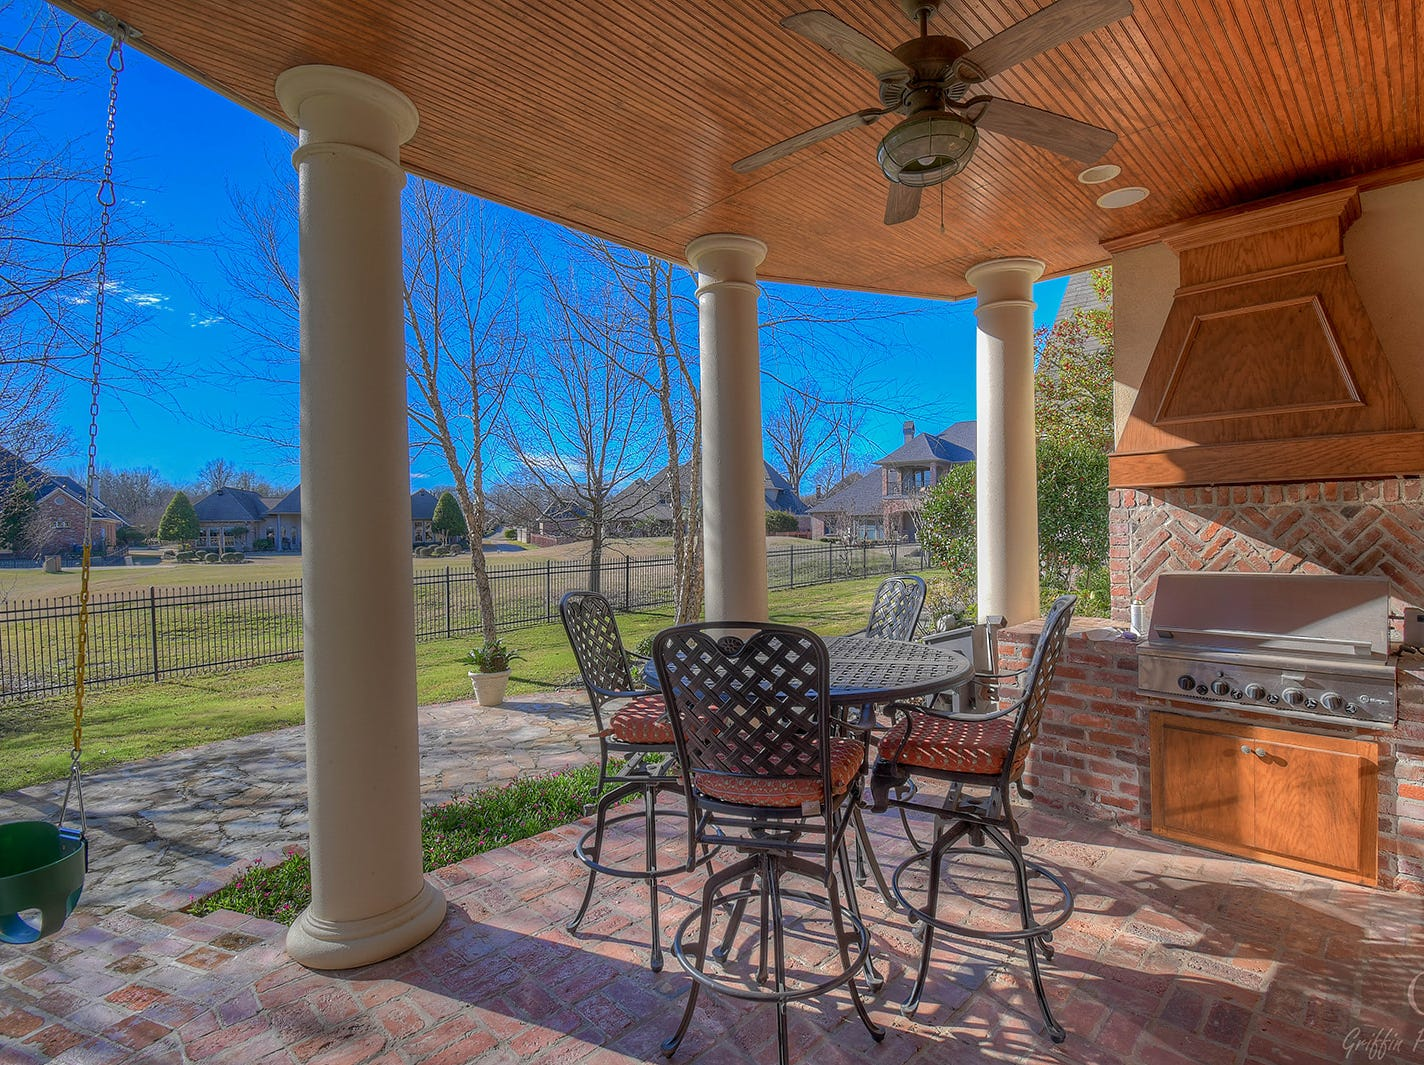 320 Bridgepoint Circle,   Bossier City  Price: $795,000  Details: 5 bedrooms, 4 bathrooms, 4,518 square feet  Special features: Magnificent Stonebridge home at the #18 tee box, indoor and outdoor furniture included in the sale.  Contact: Mary Jo Gray,  469-6867